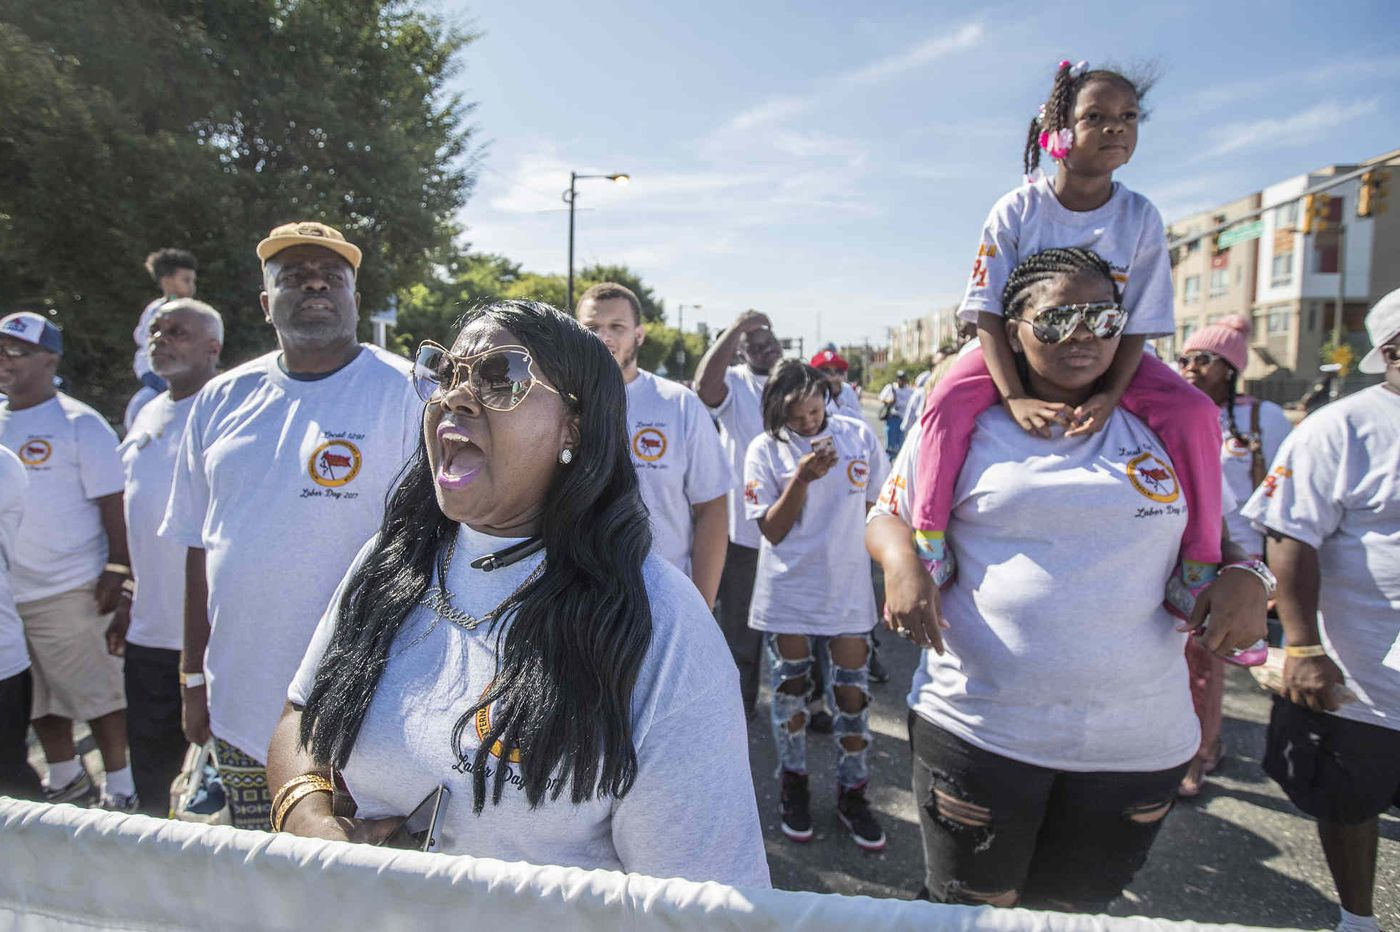 Supporting labor unions is good for working families as COVID-19 continues to spread | Opinion